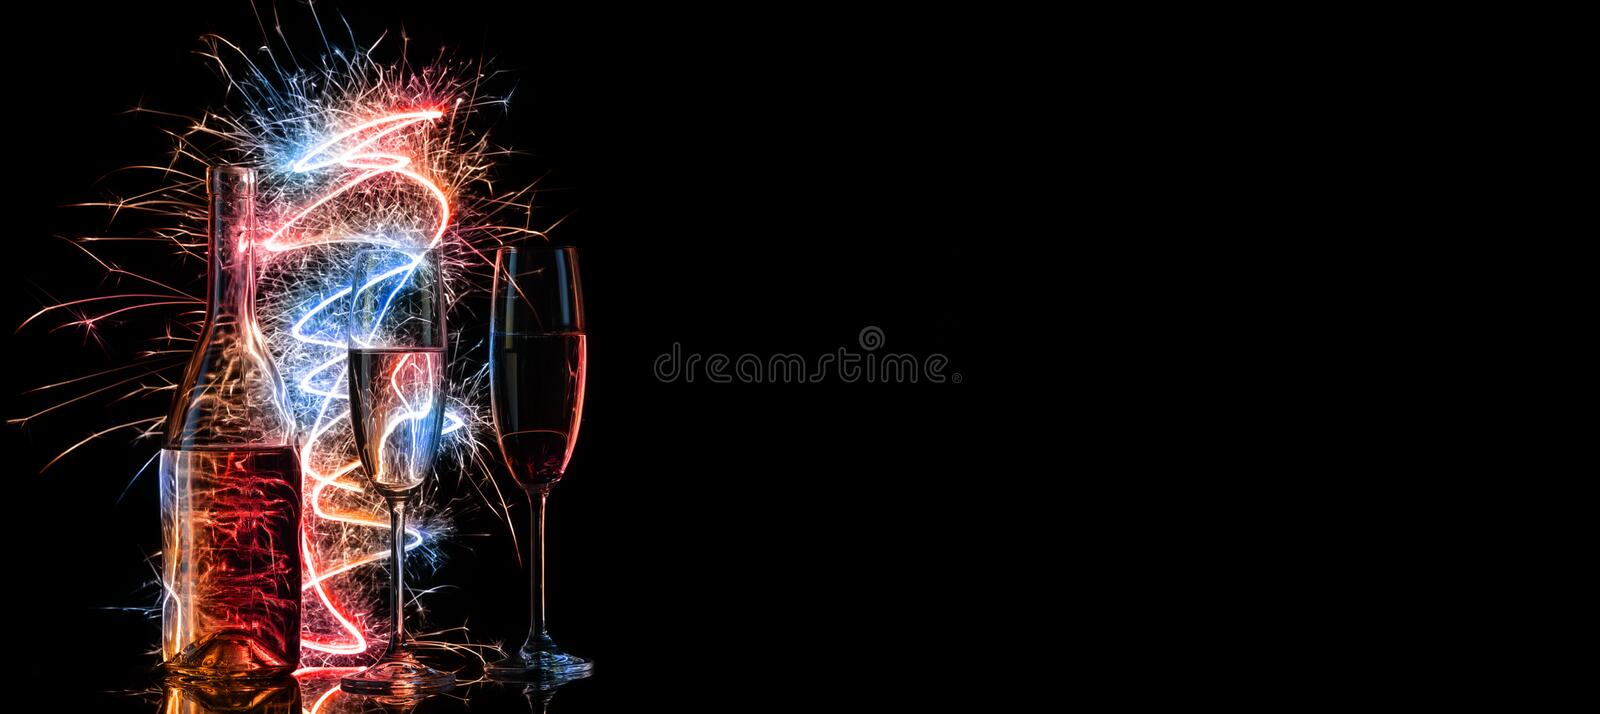 Bottle and two glasses of champagne in multi-colored sparklers on black background royalty free stock images